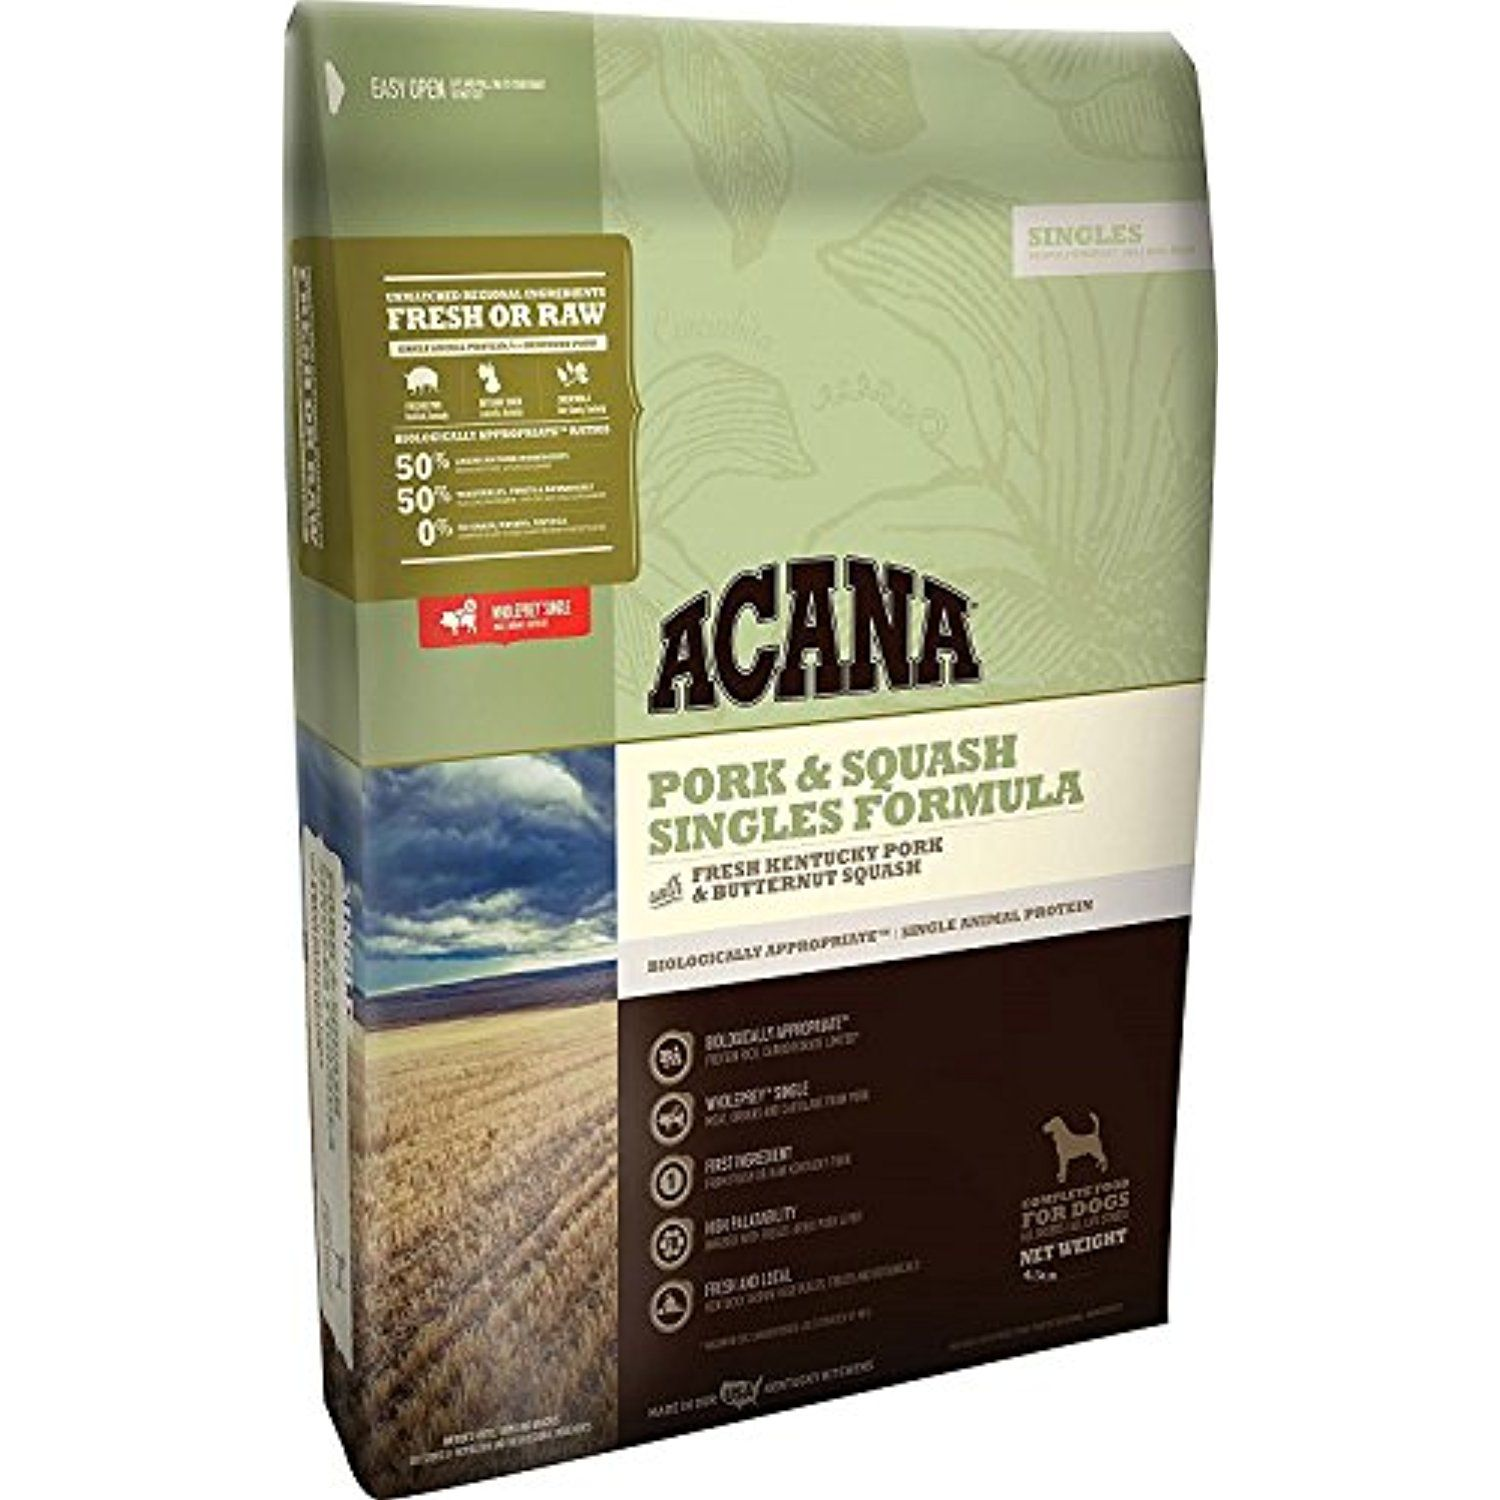 Acana Singles Formula Pork And Squash Dog Food 4 5lbs You Can